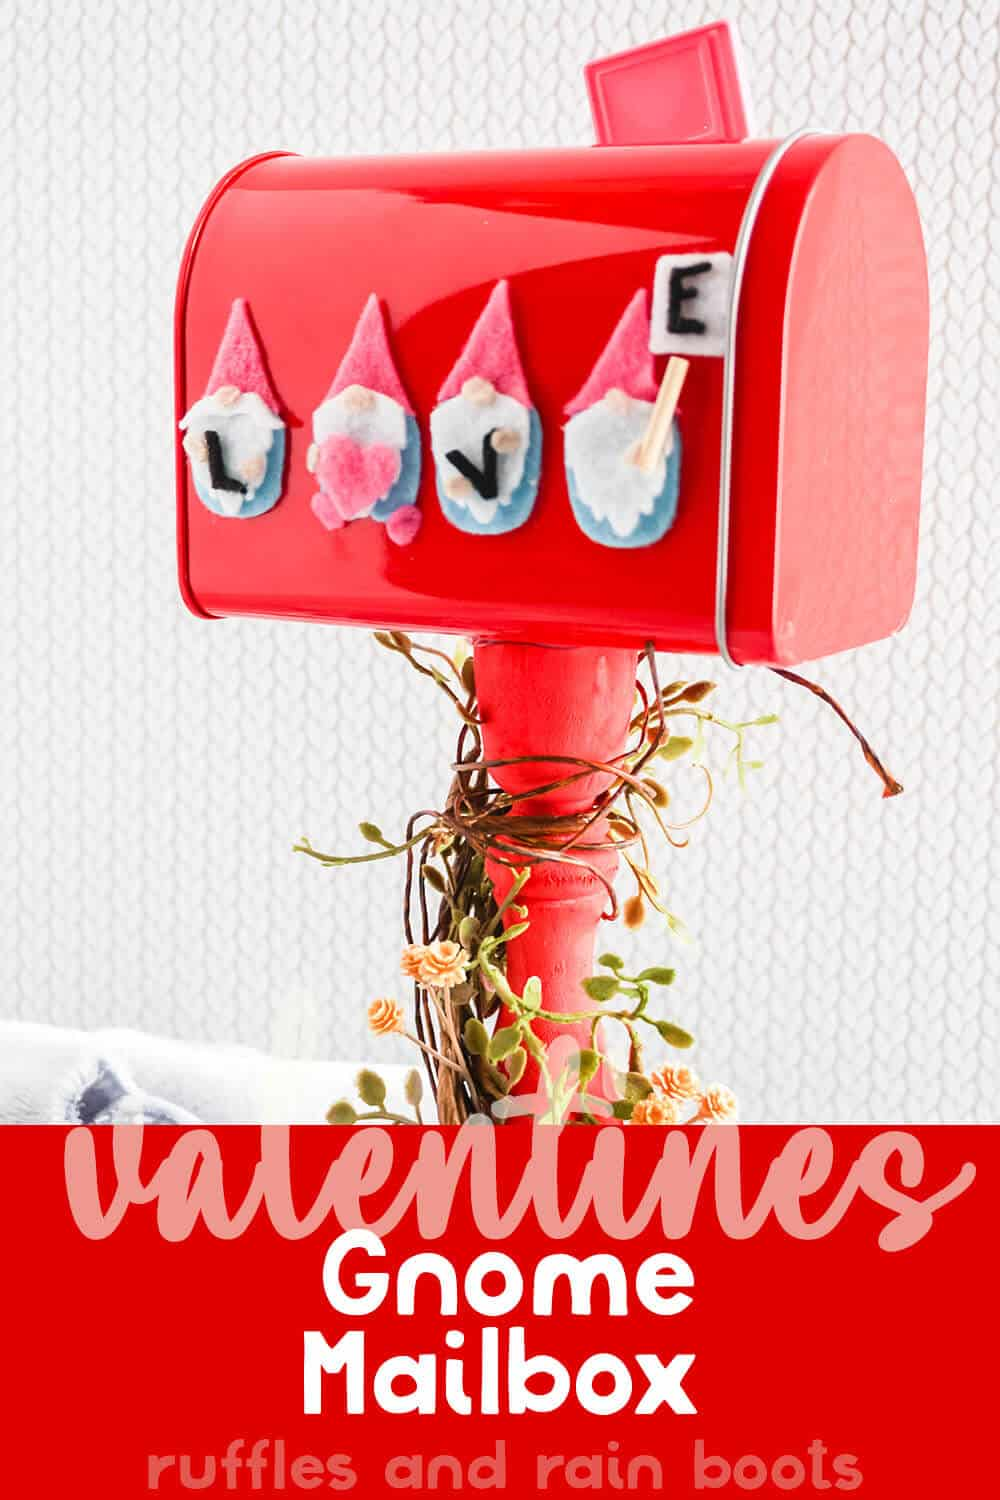 side view of easy valentines mailbox with text which reads valentines gnome mailbox